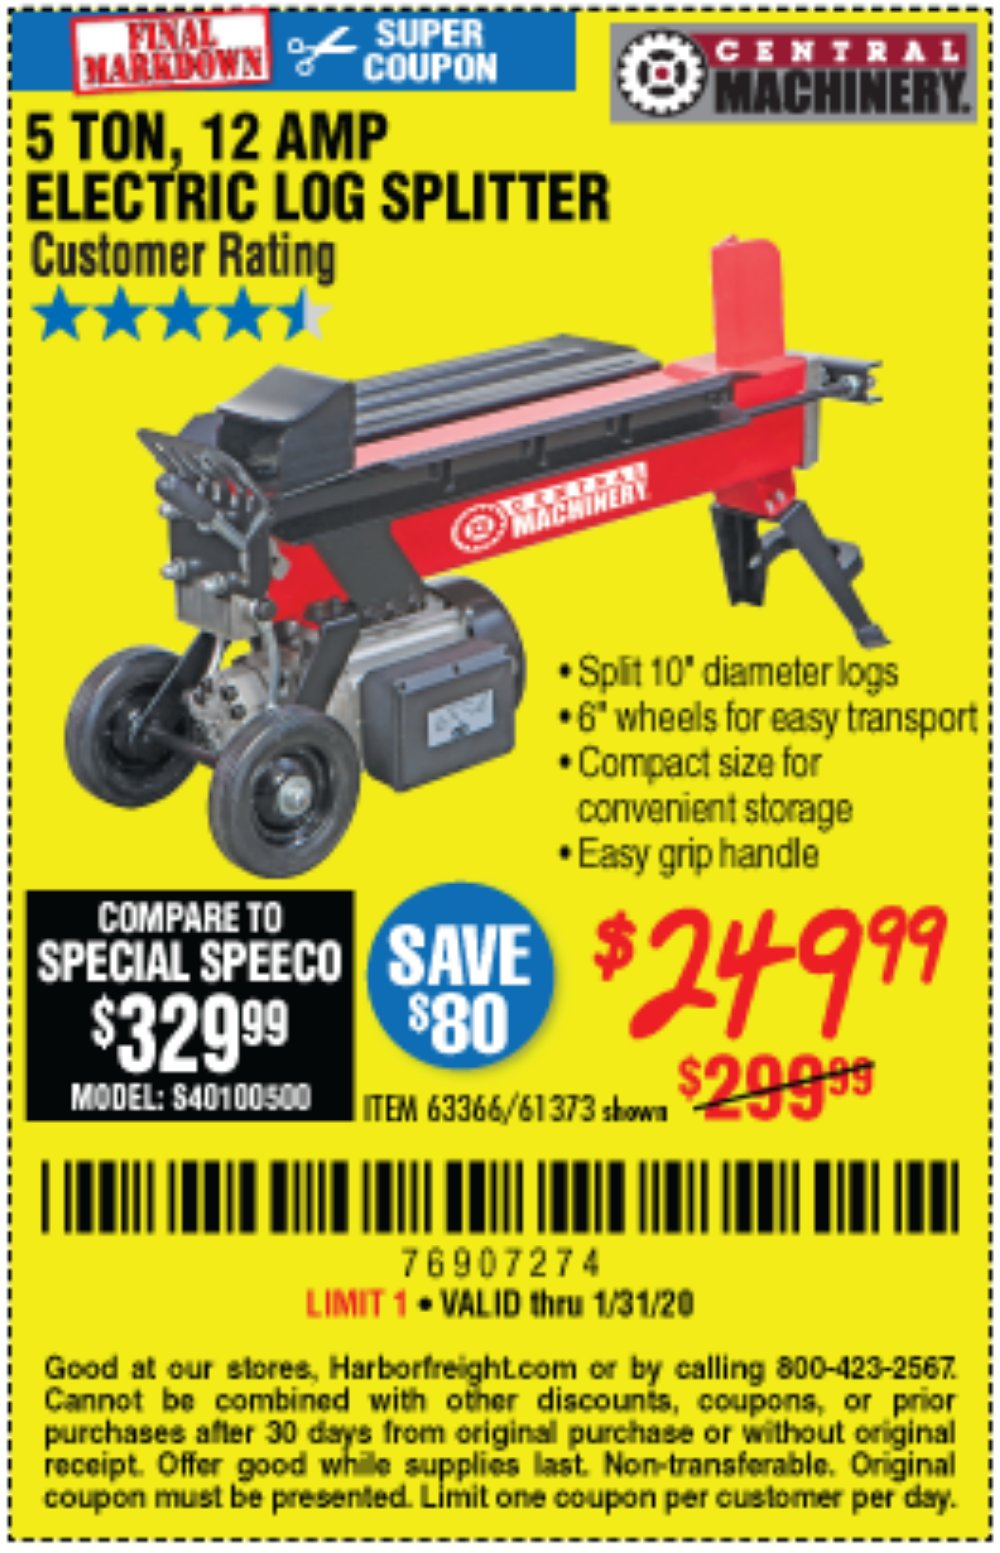 Harbor Freight Coupon, HF Coupons - 5 Ton Electric Log Splitter